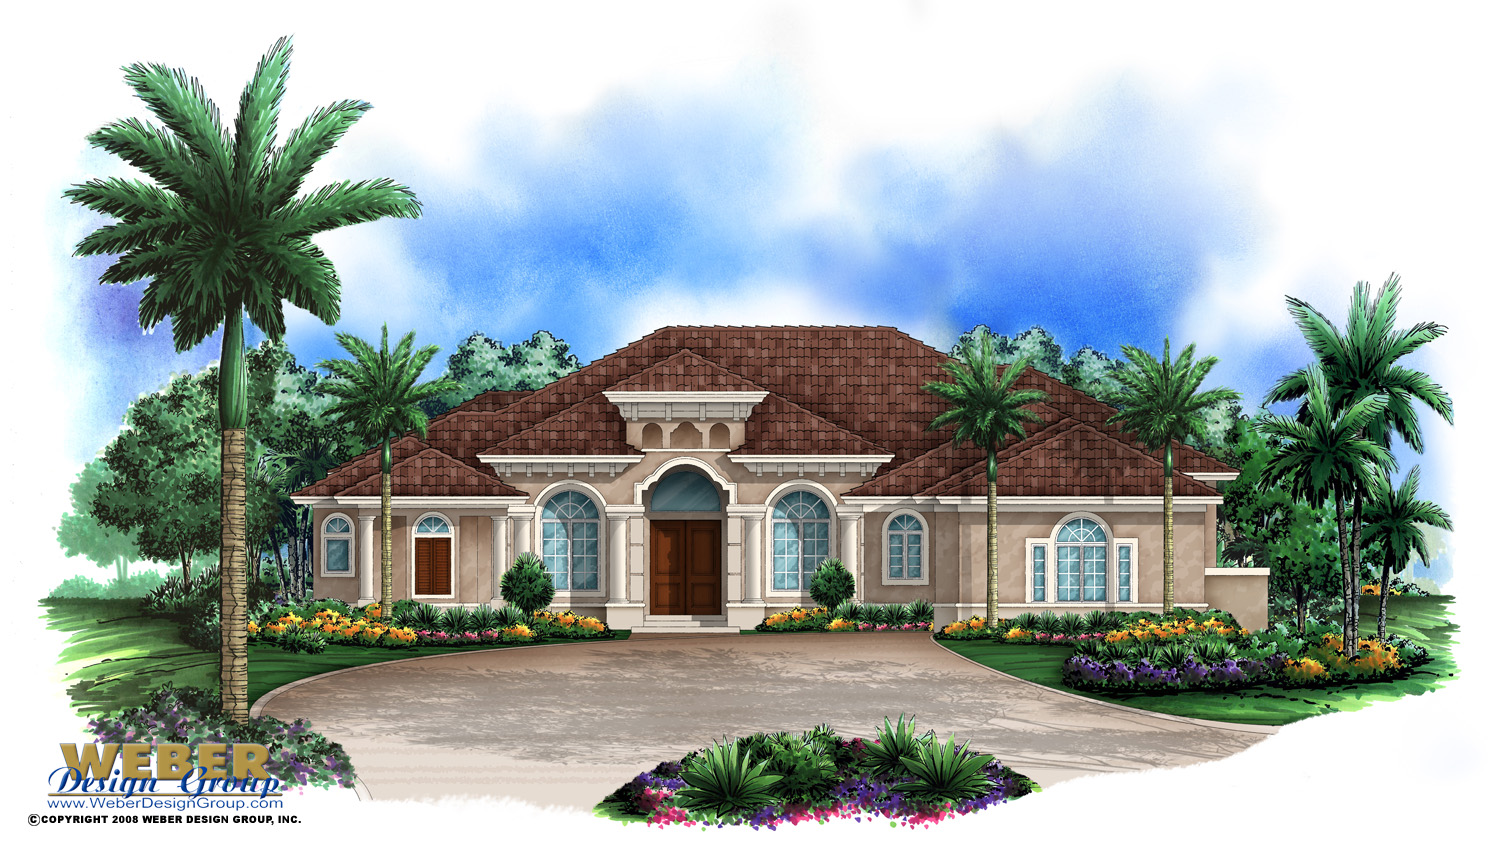 florida house plans architectural designs stock custom home plans valencia iii house plan